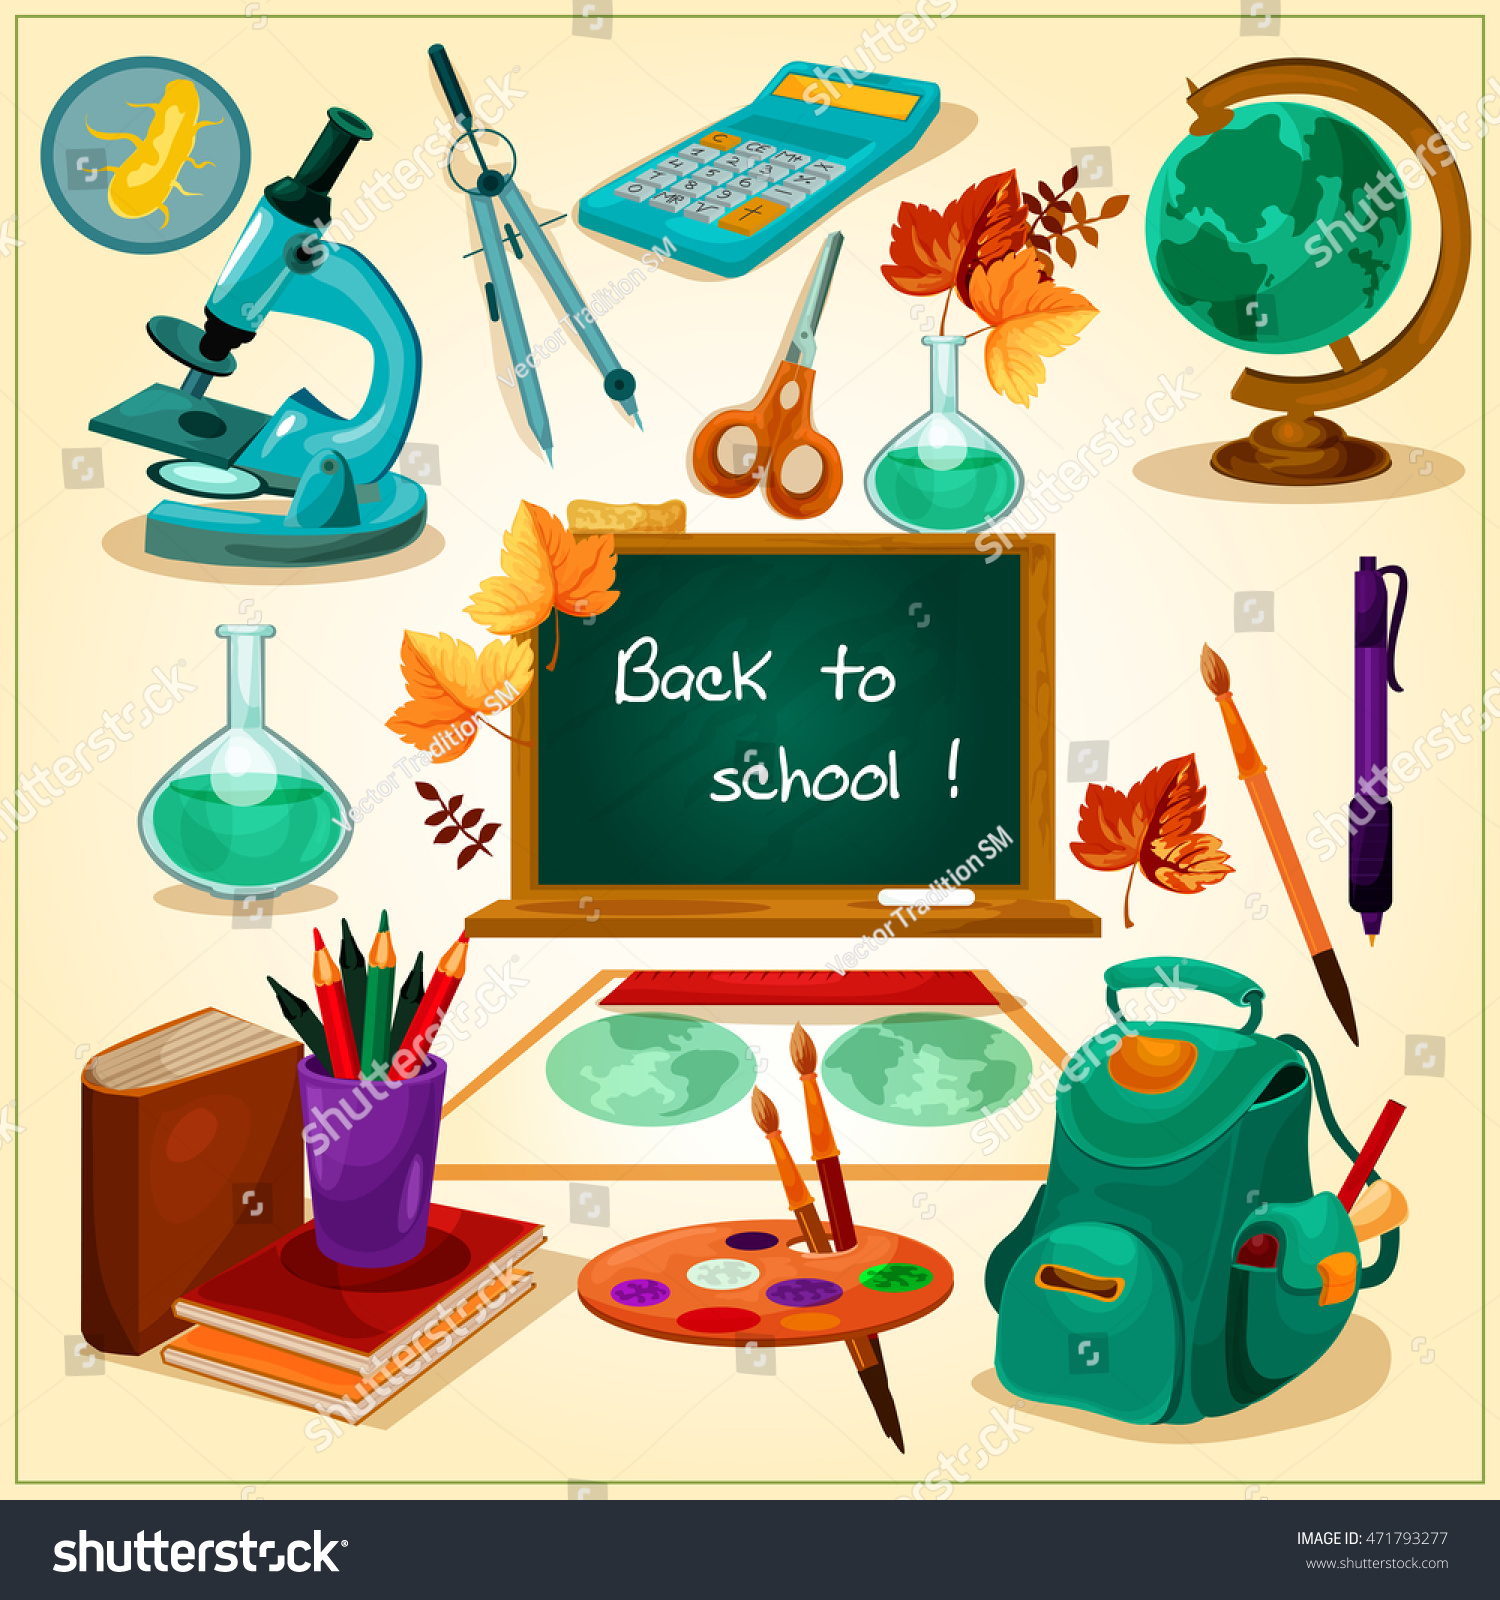 Ihram Kids For Sale Dubai: Back School Poster School Supplies Stationery Stock Vector